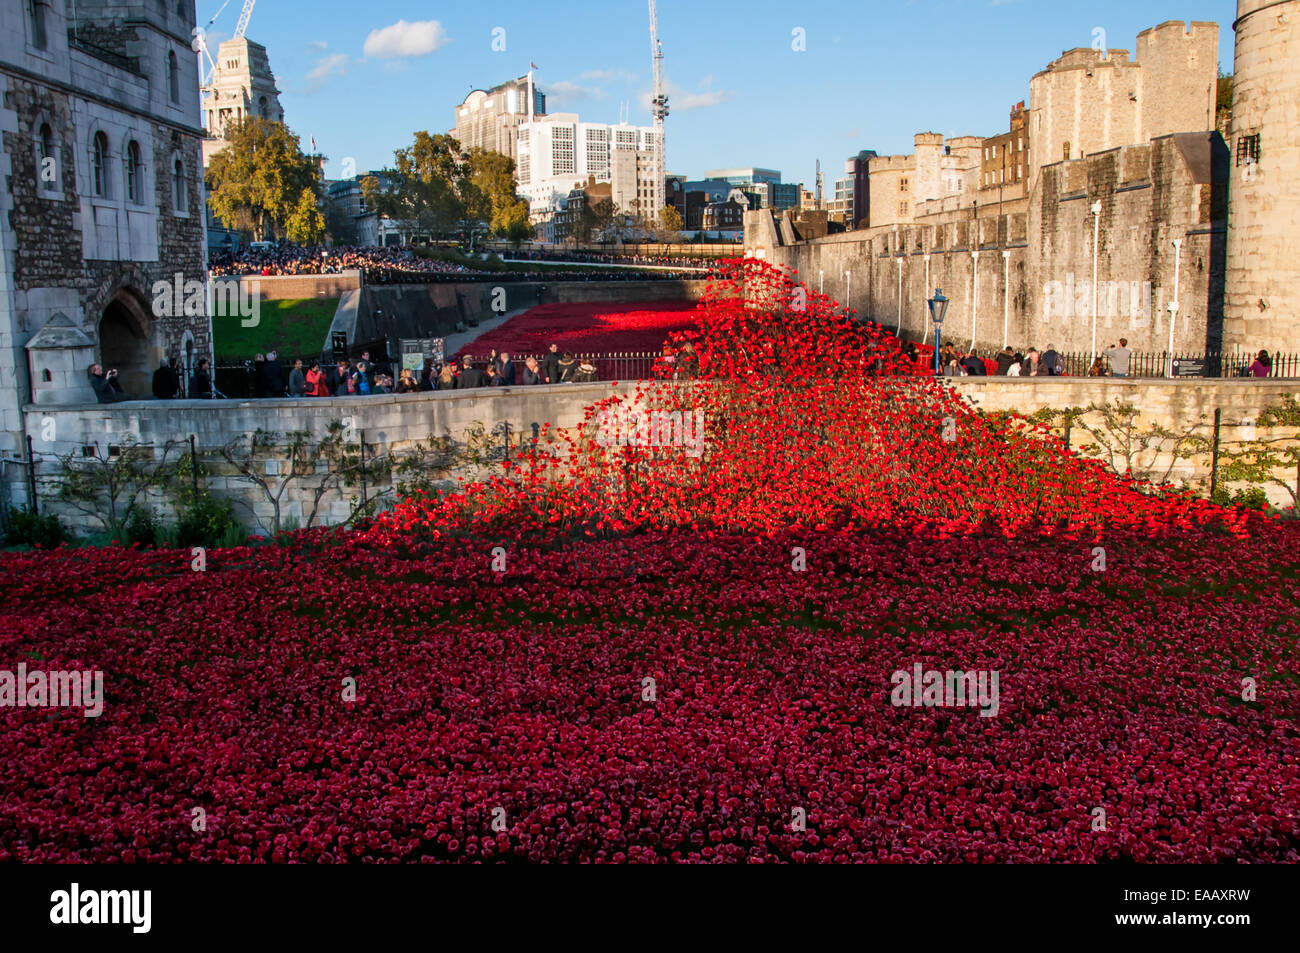 Blood Swept Lands and Seas of Red is a 2014 work of installation art placed in the moat of the Tower of London for - Stock Image